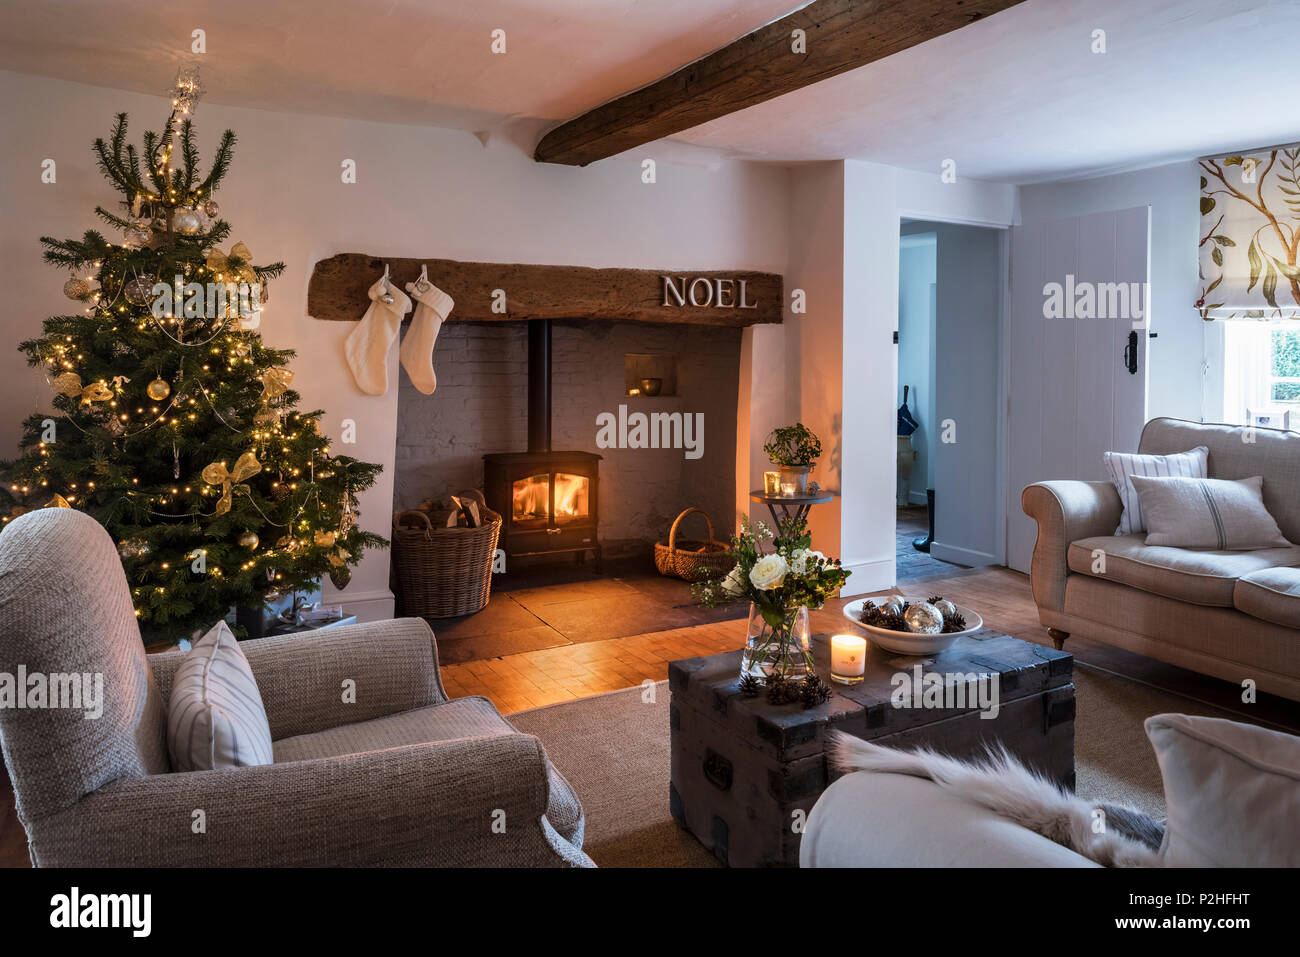 Cosy festive sitting room with inglenook fireplace and christmas tree, the sofa is by Laura Ashley and the blind in Lewis & Woods Adam's Eden fabric - Stock Image